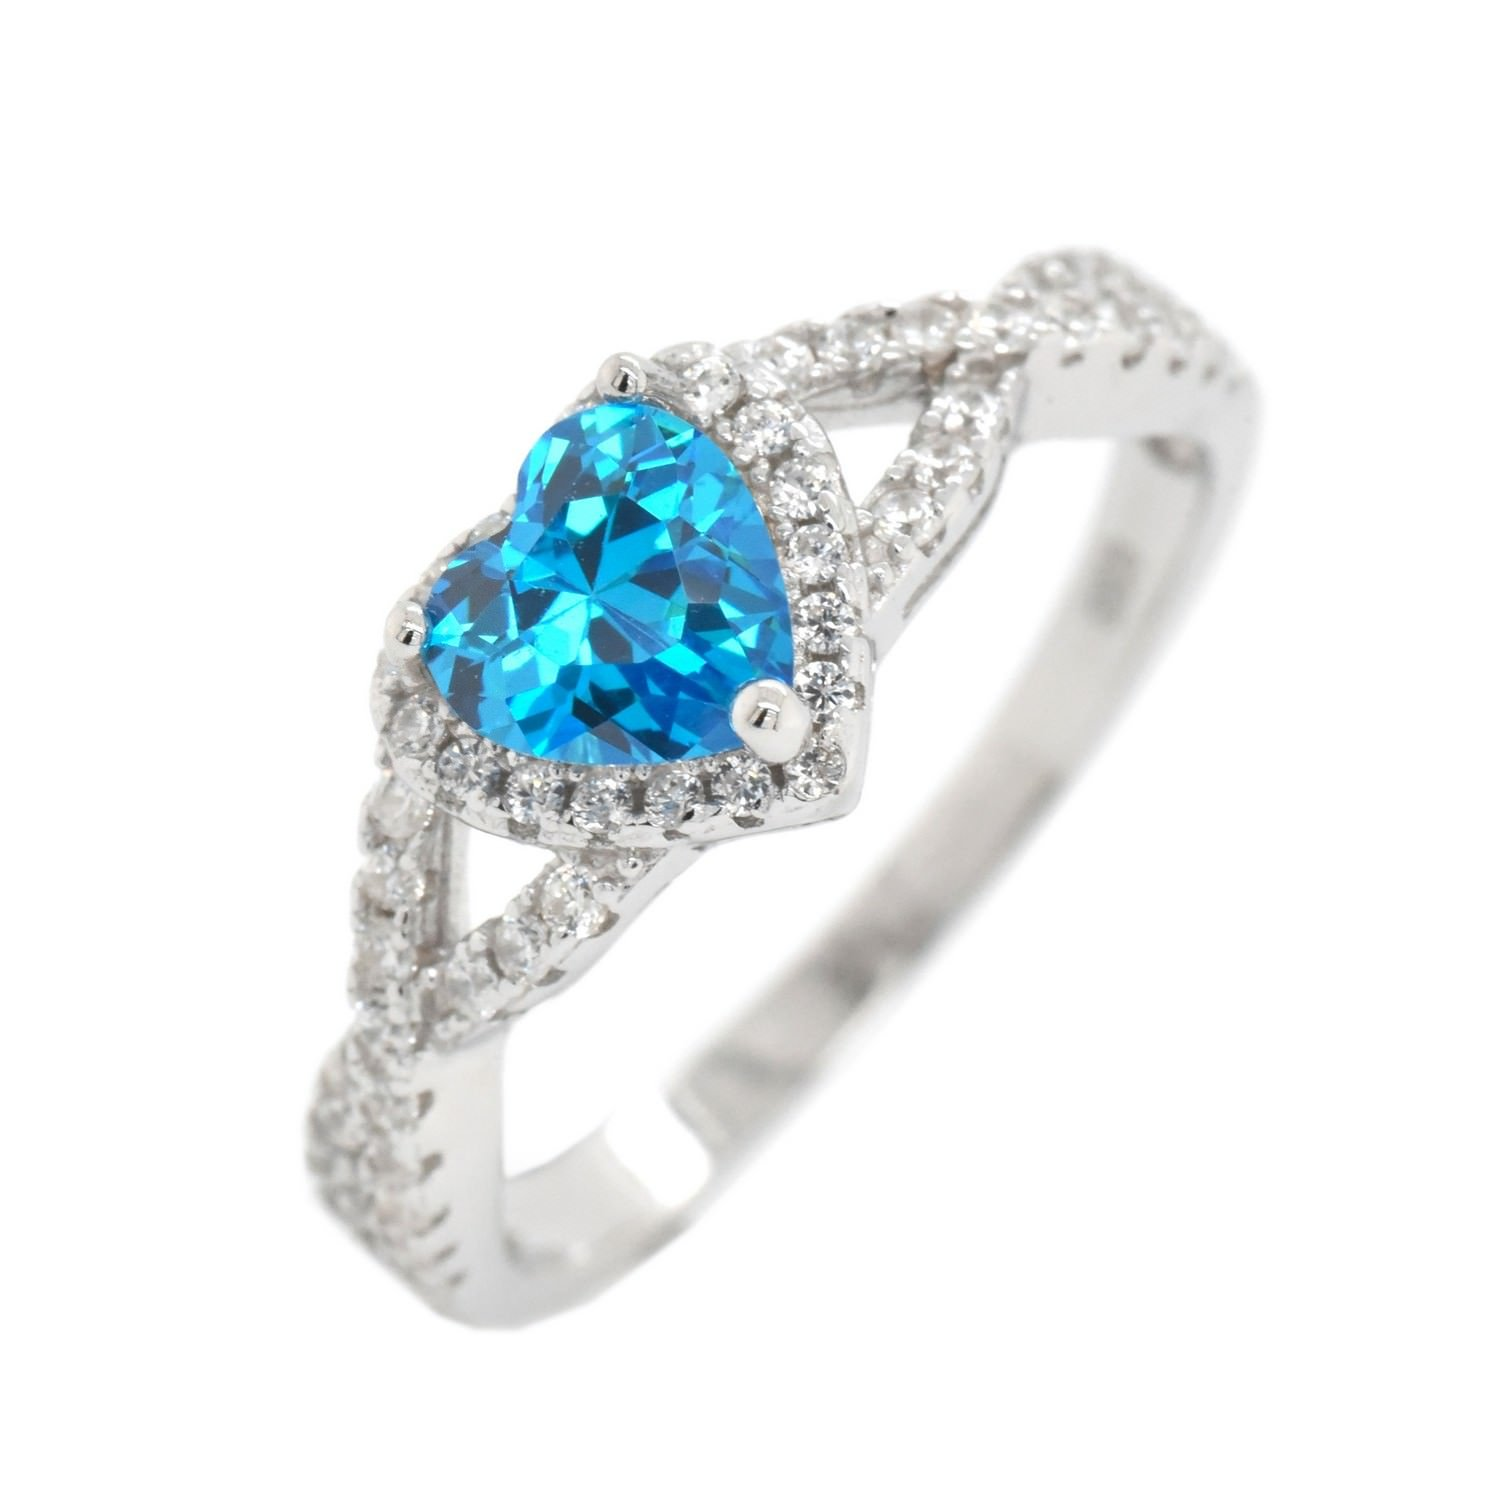 Simulated Birthstone Cubic Zirconia Halo Infinity Womens Girls Sterling Silver Ring Size 7 - BlueTopaz